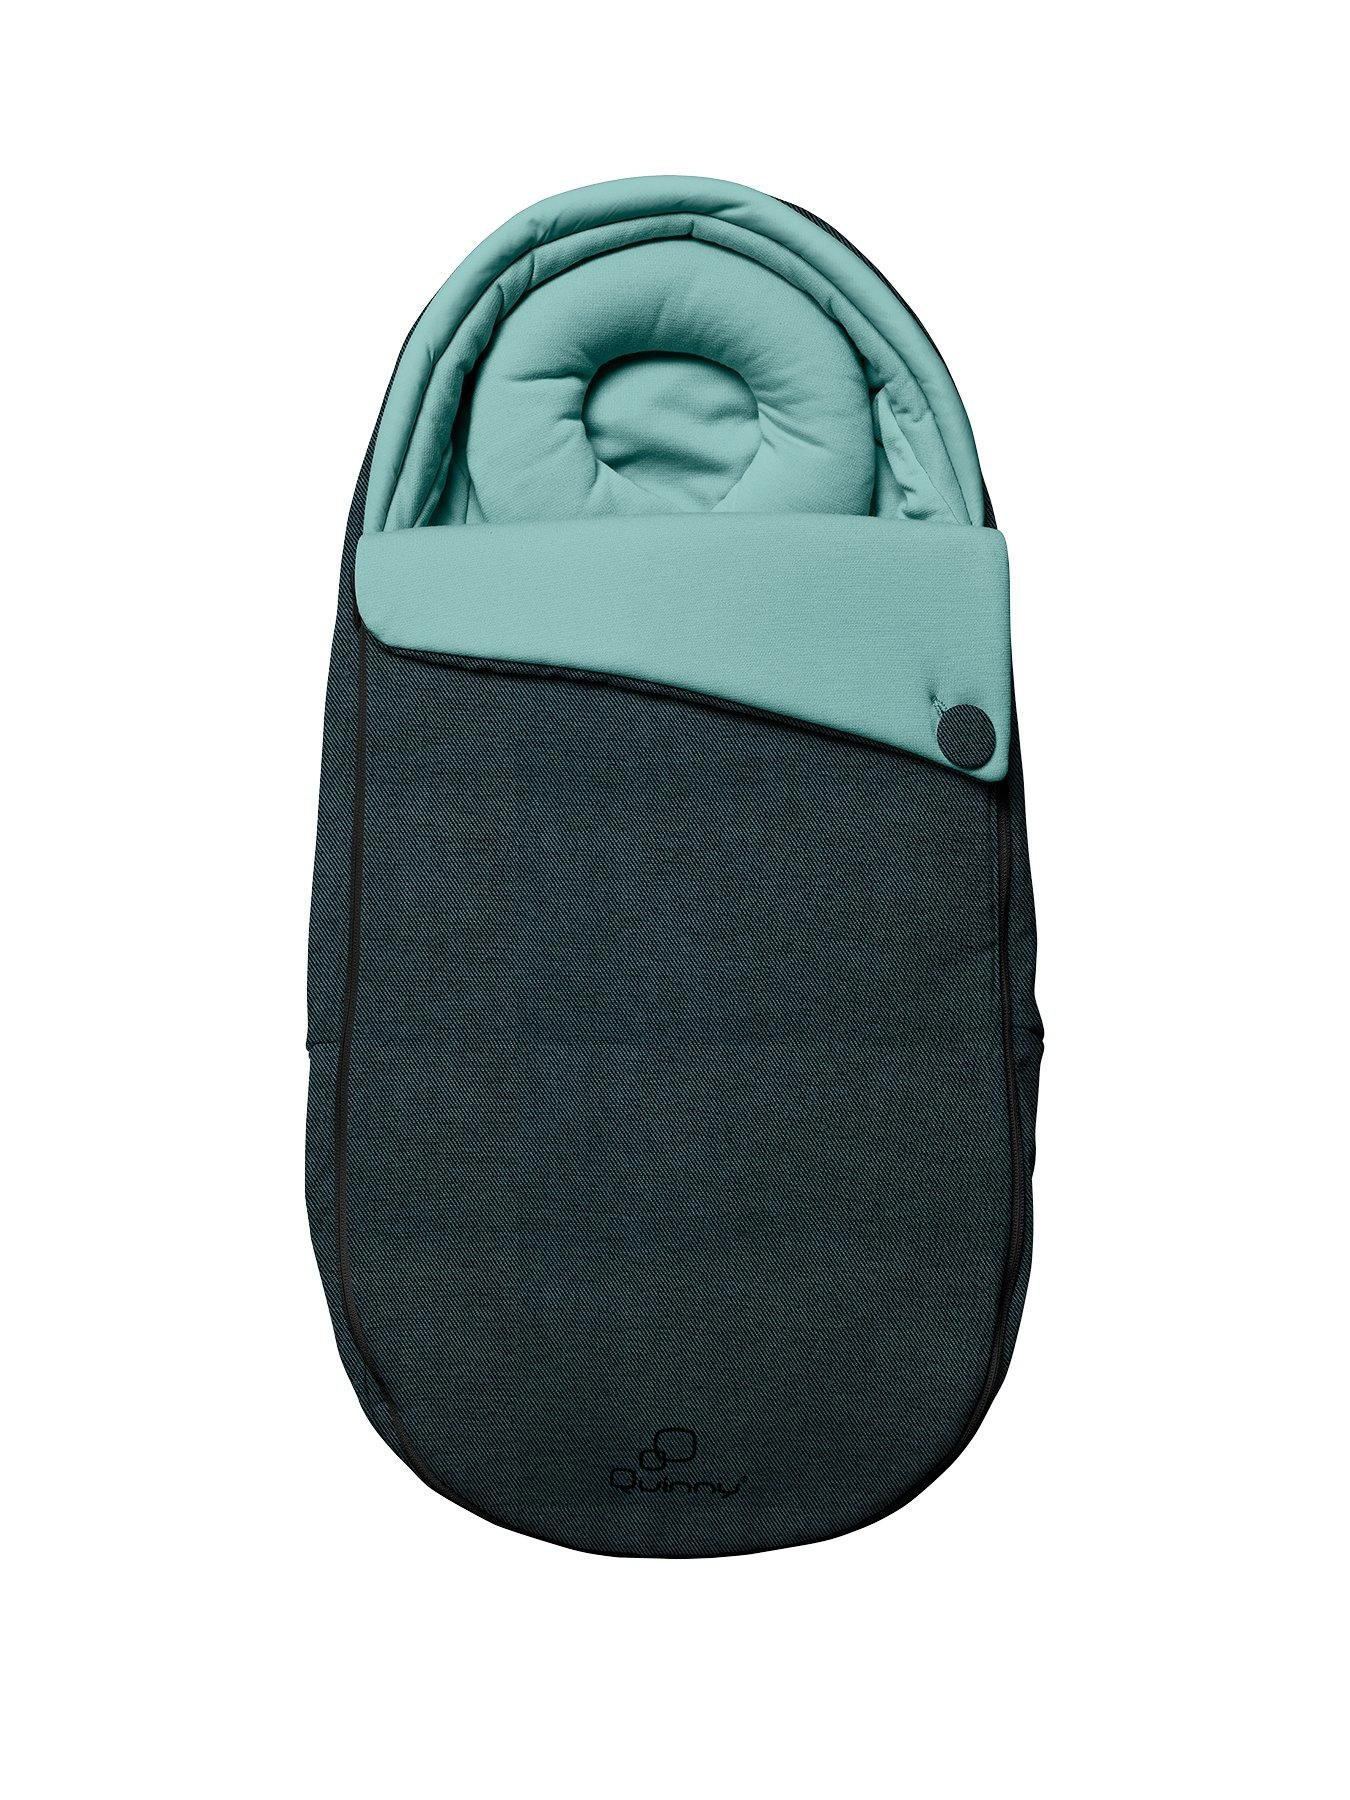 Quinny Quinny Moodd Pushchair, Foldable Carrycot, Pebble Car Seat Package - Novel Nile Quinny  2